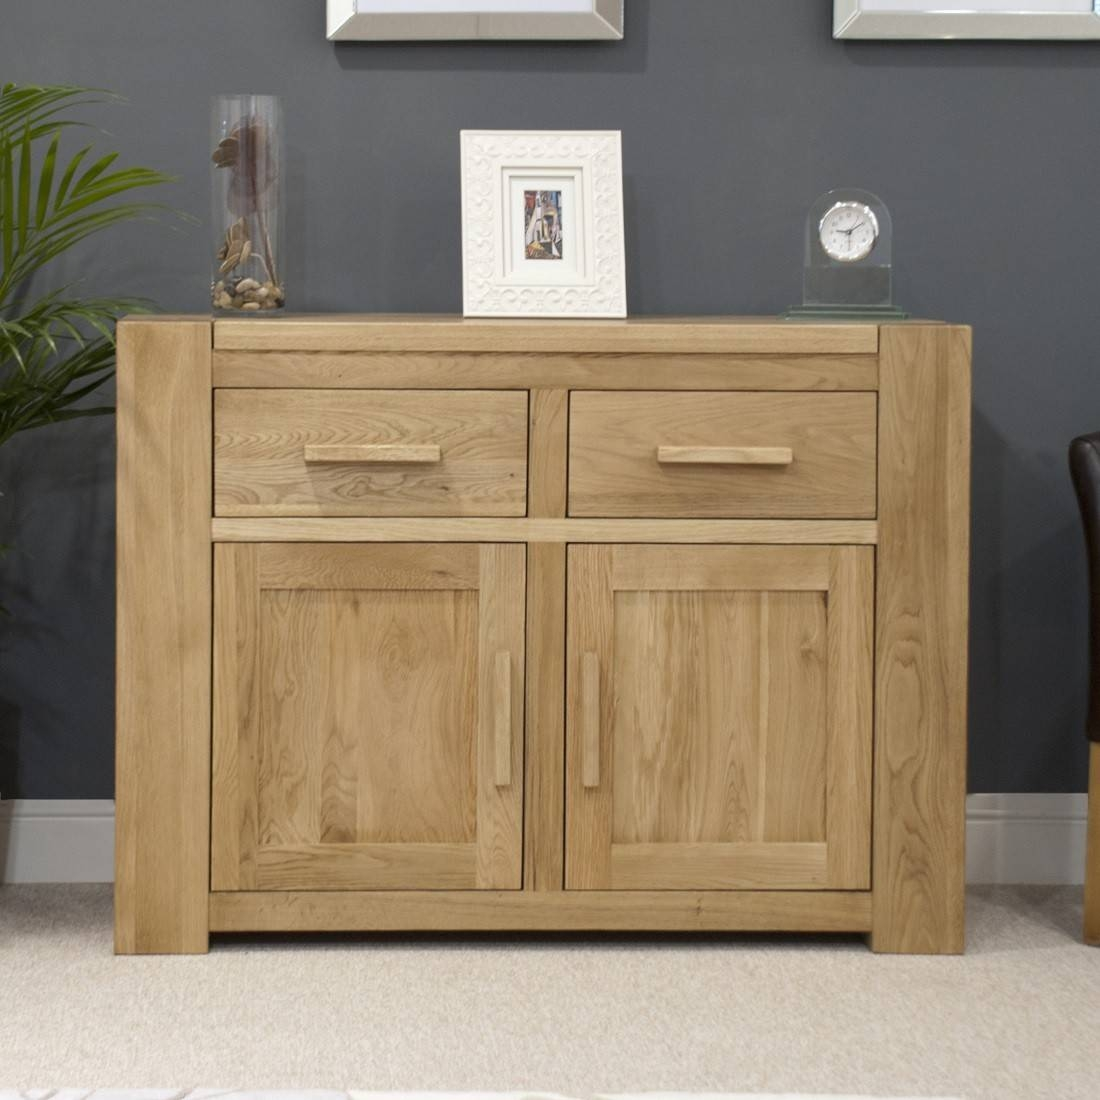 Trend Solid Oak Small 2 Door Sideboard | Oak Furniture Uk with Solid Oak Sideboards (Image 15 of 15)